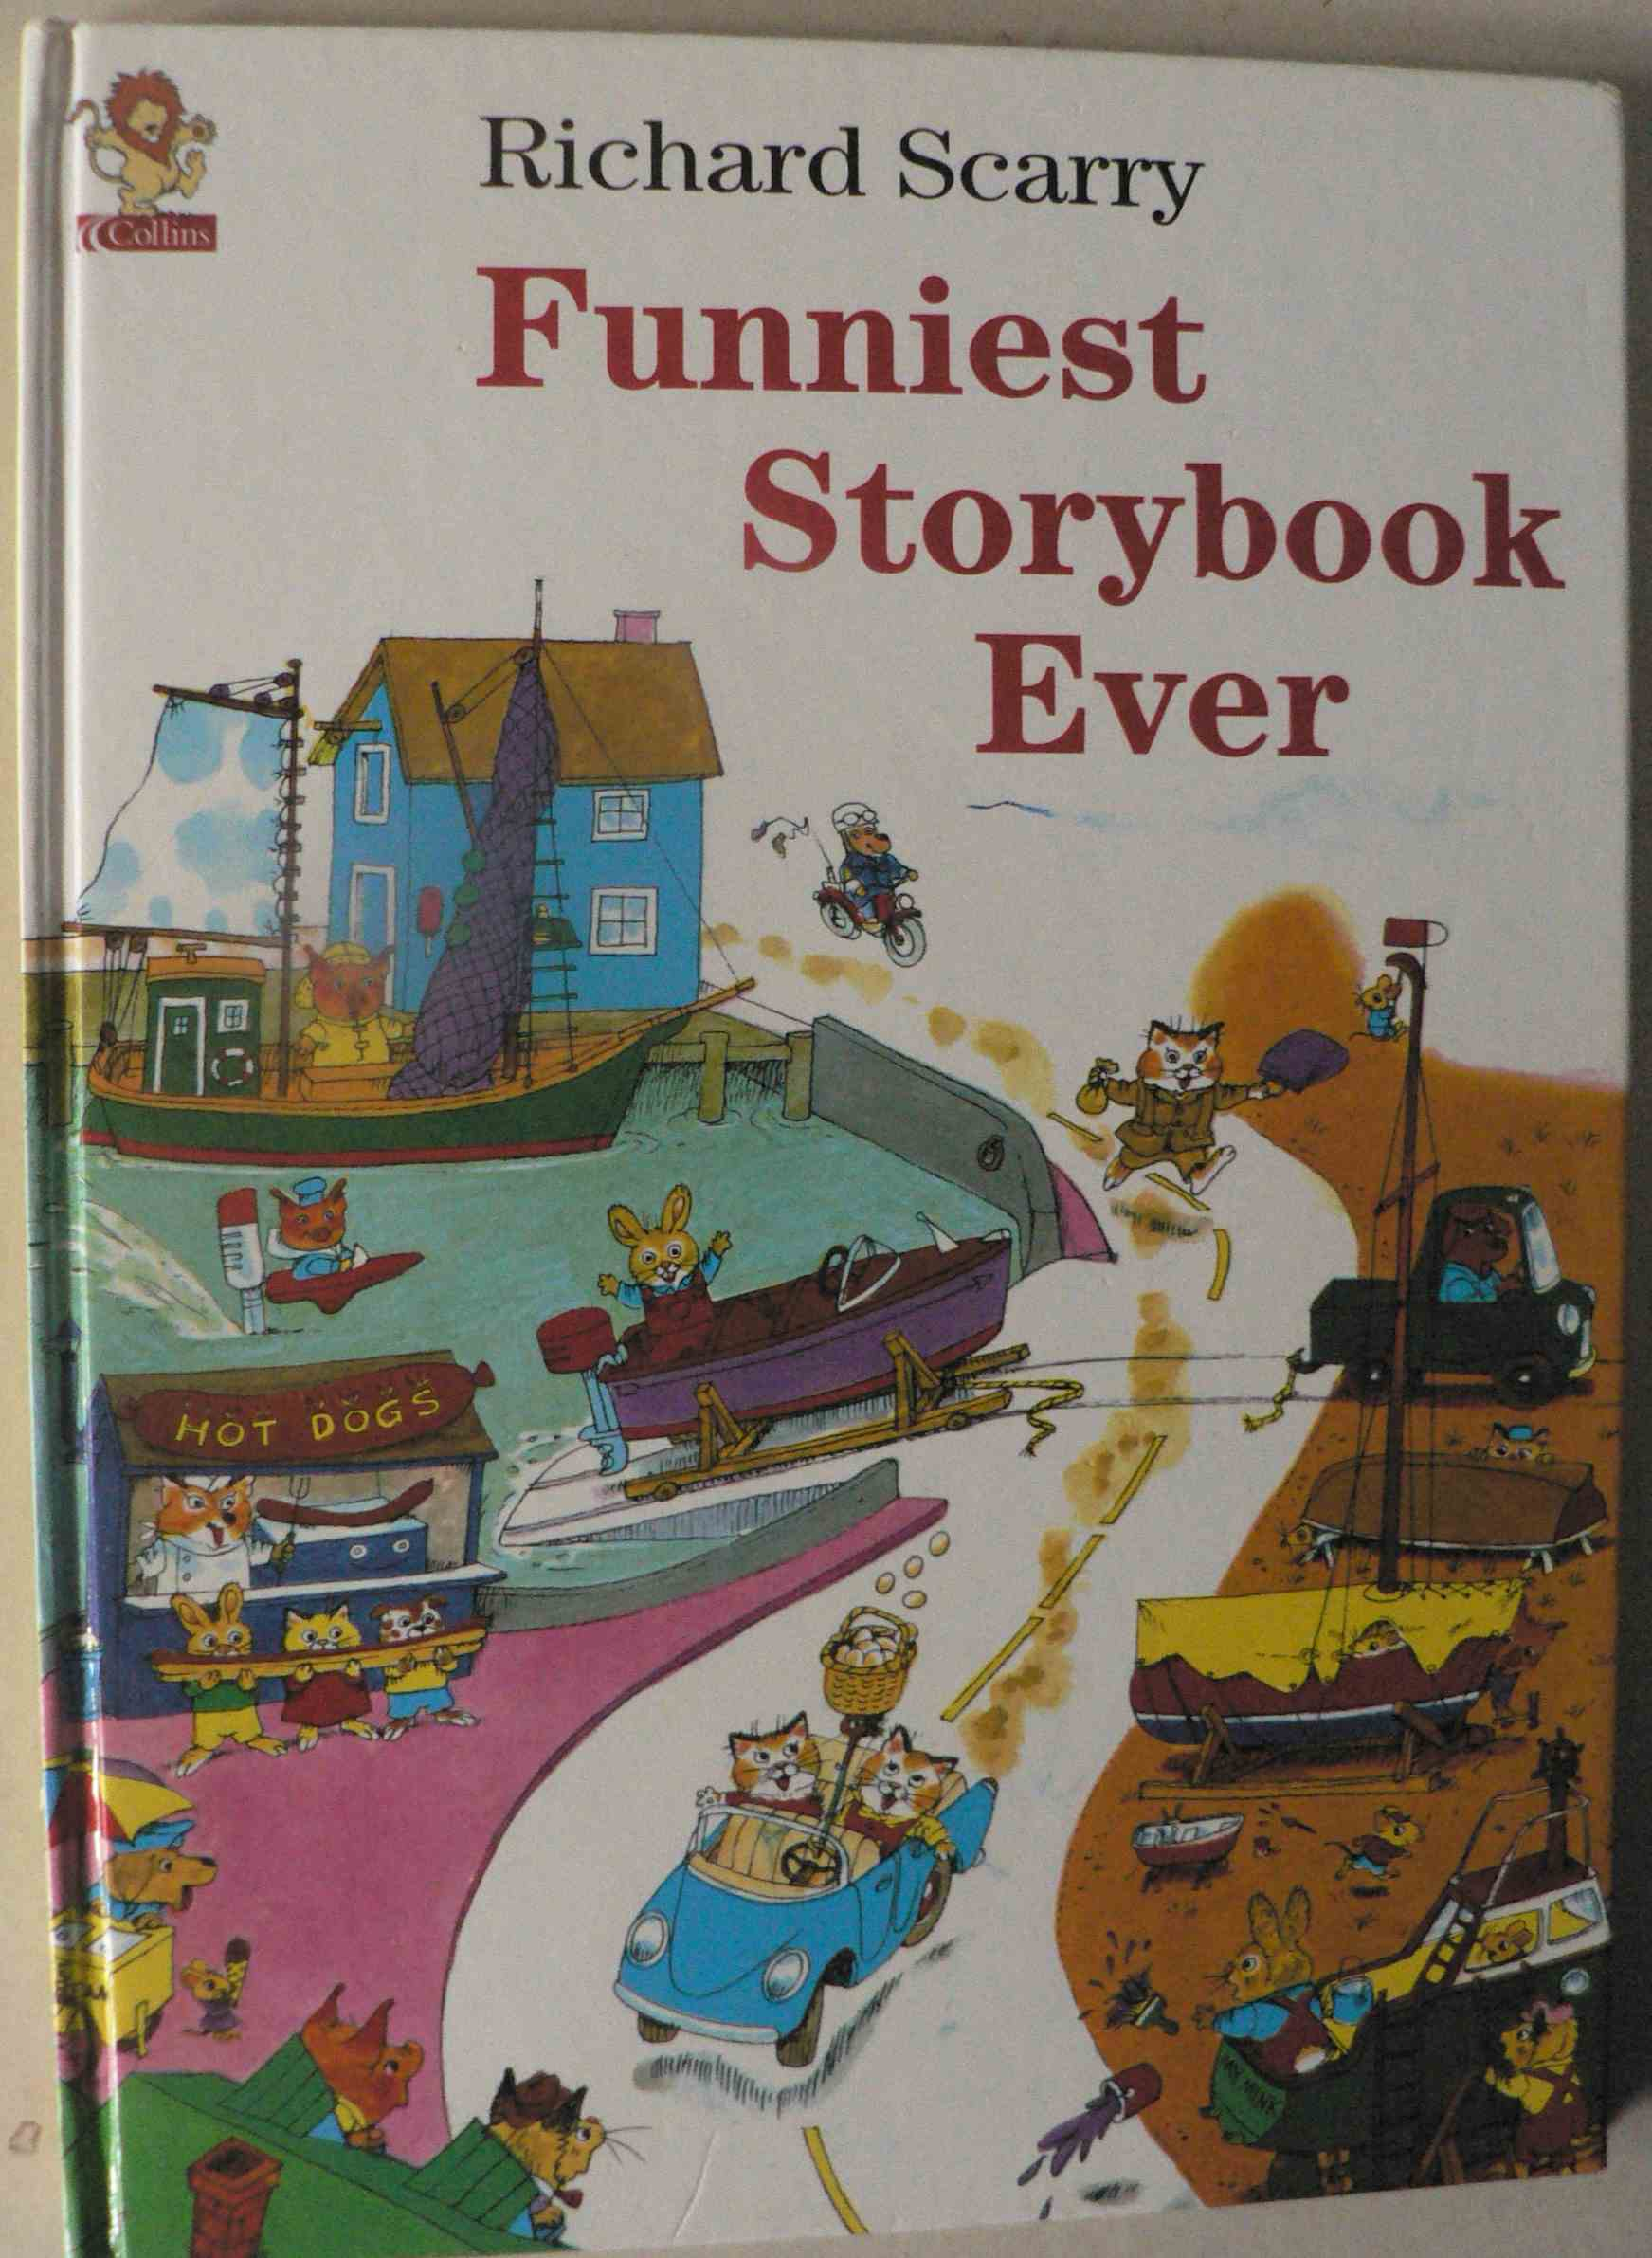 Richard Scarry Funniest Storybook Ever